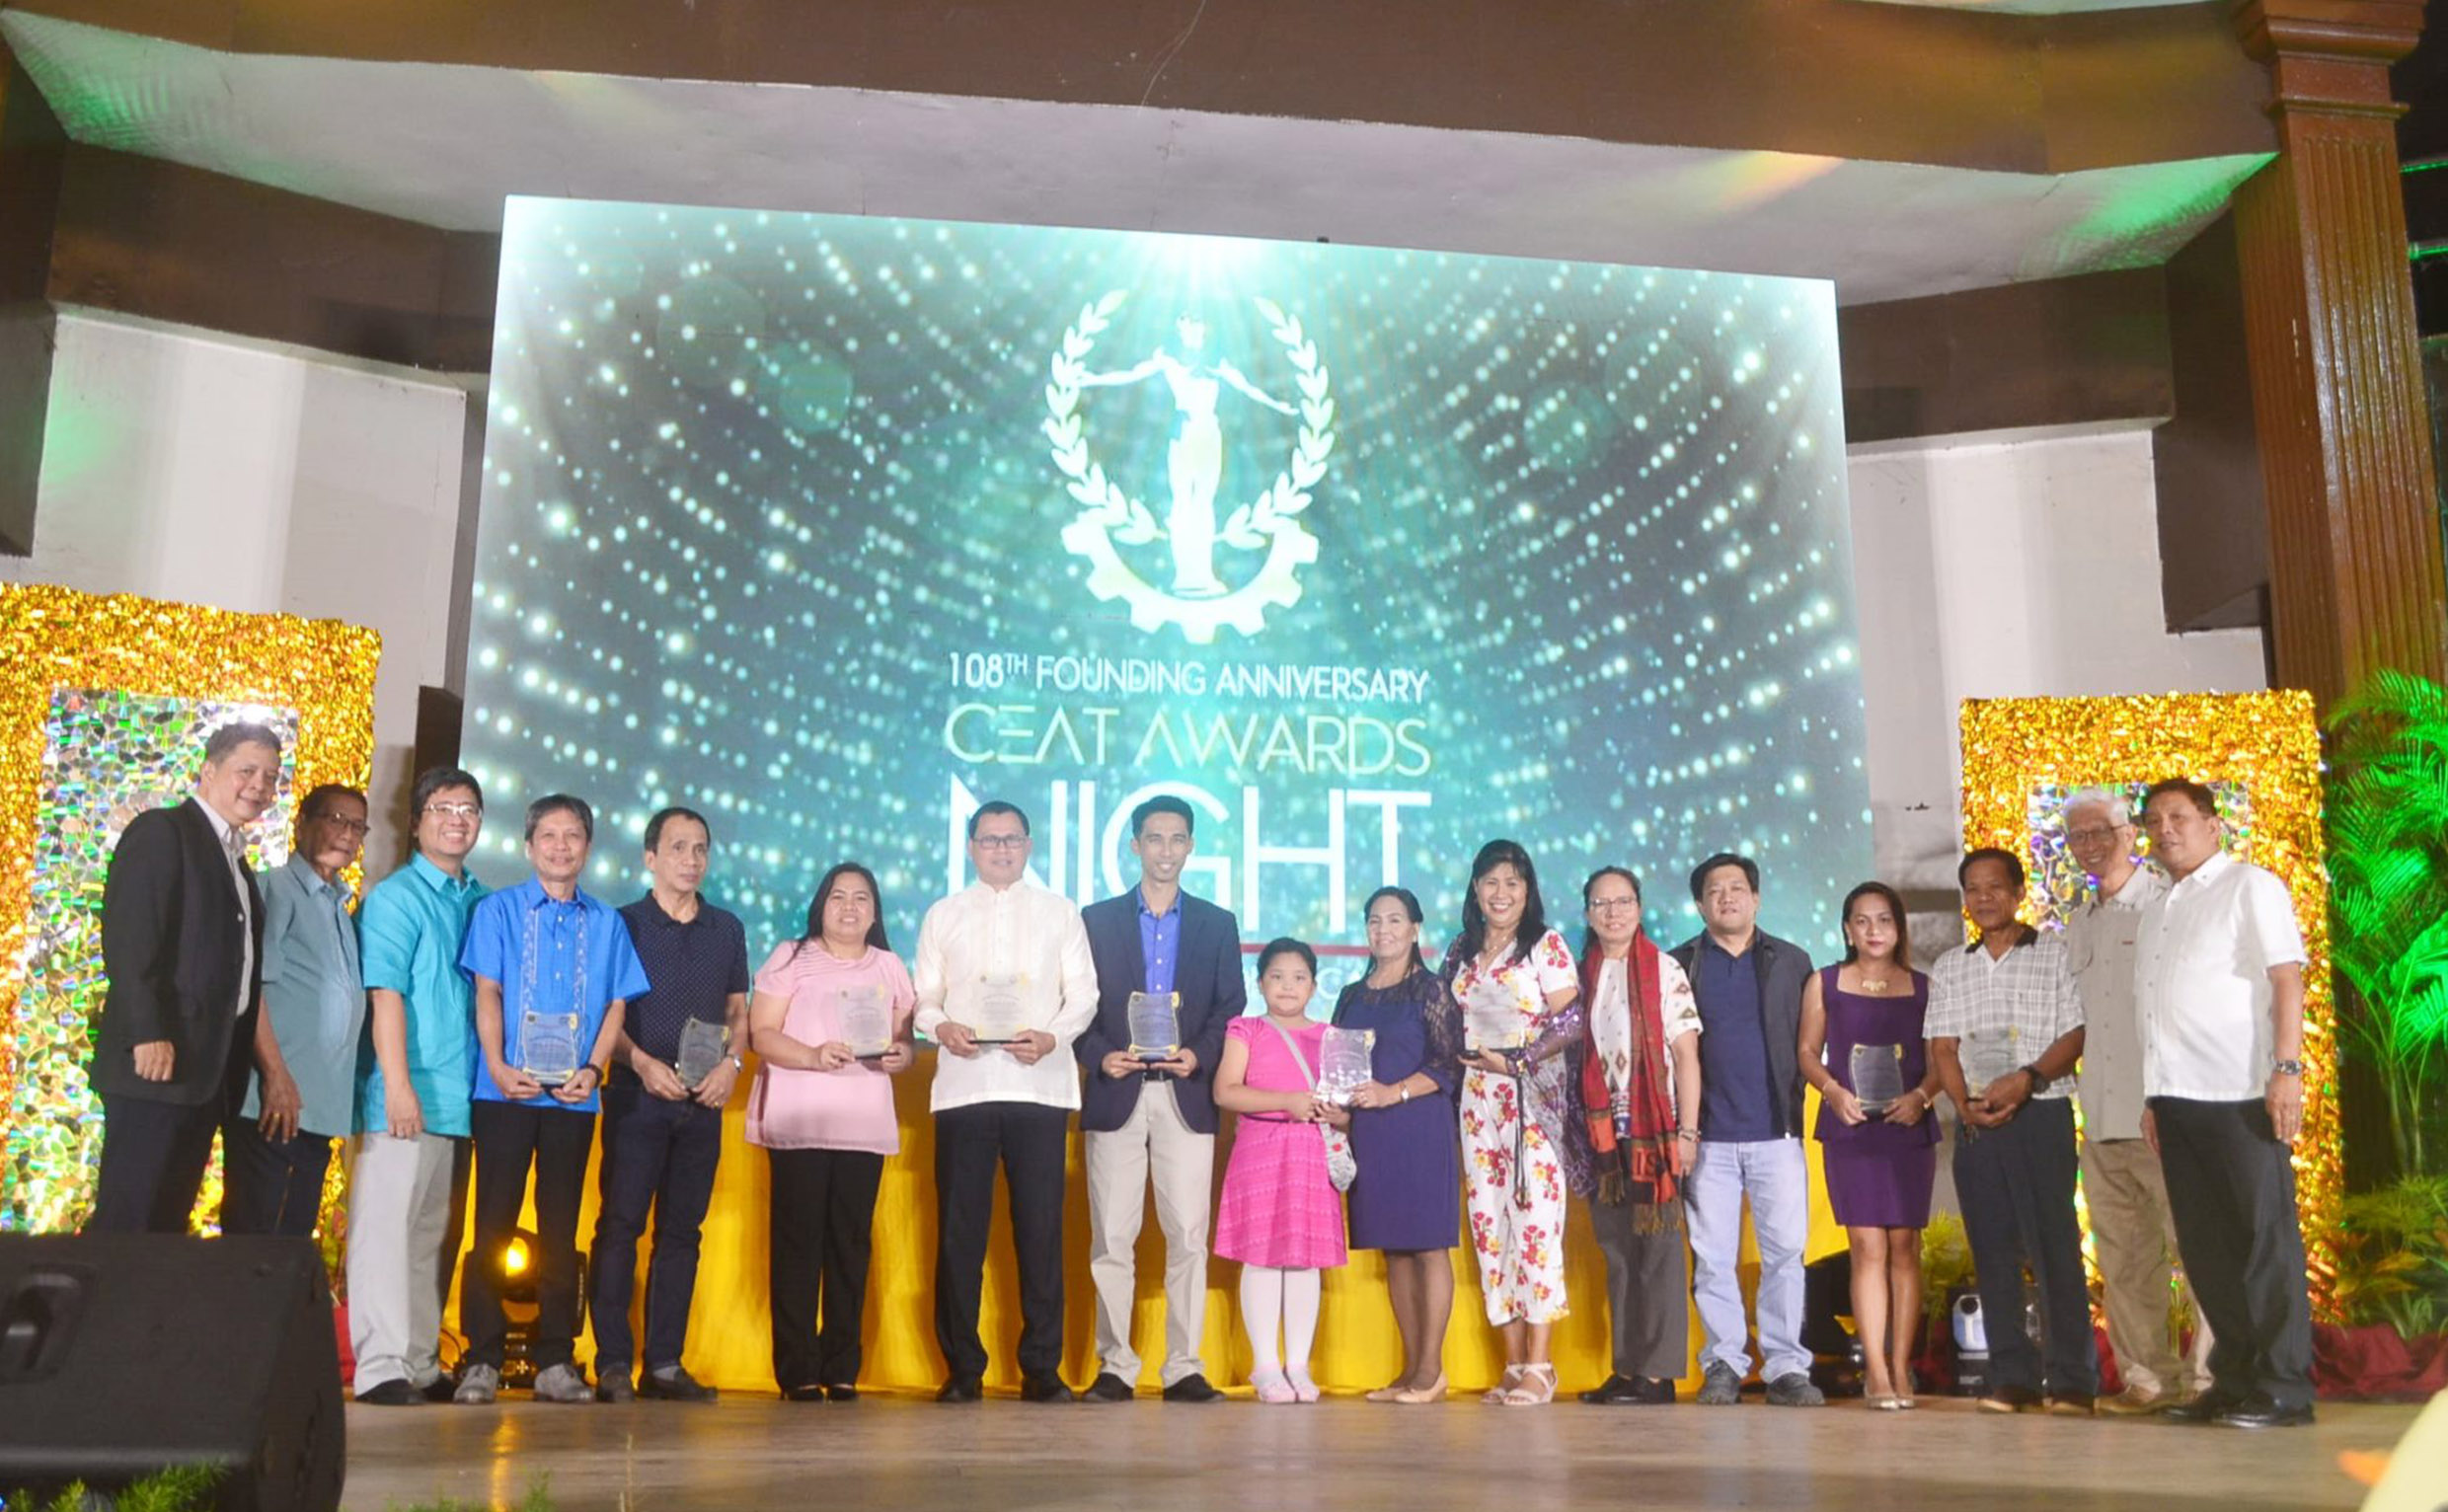 CEAT celebrates 108th founding year